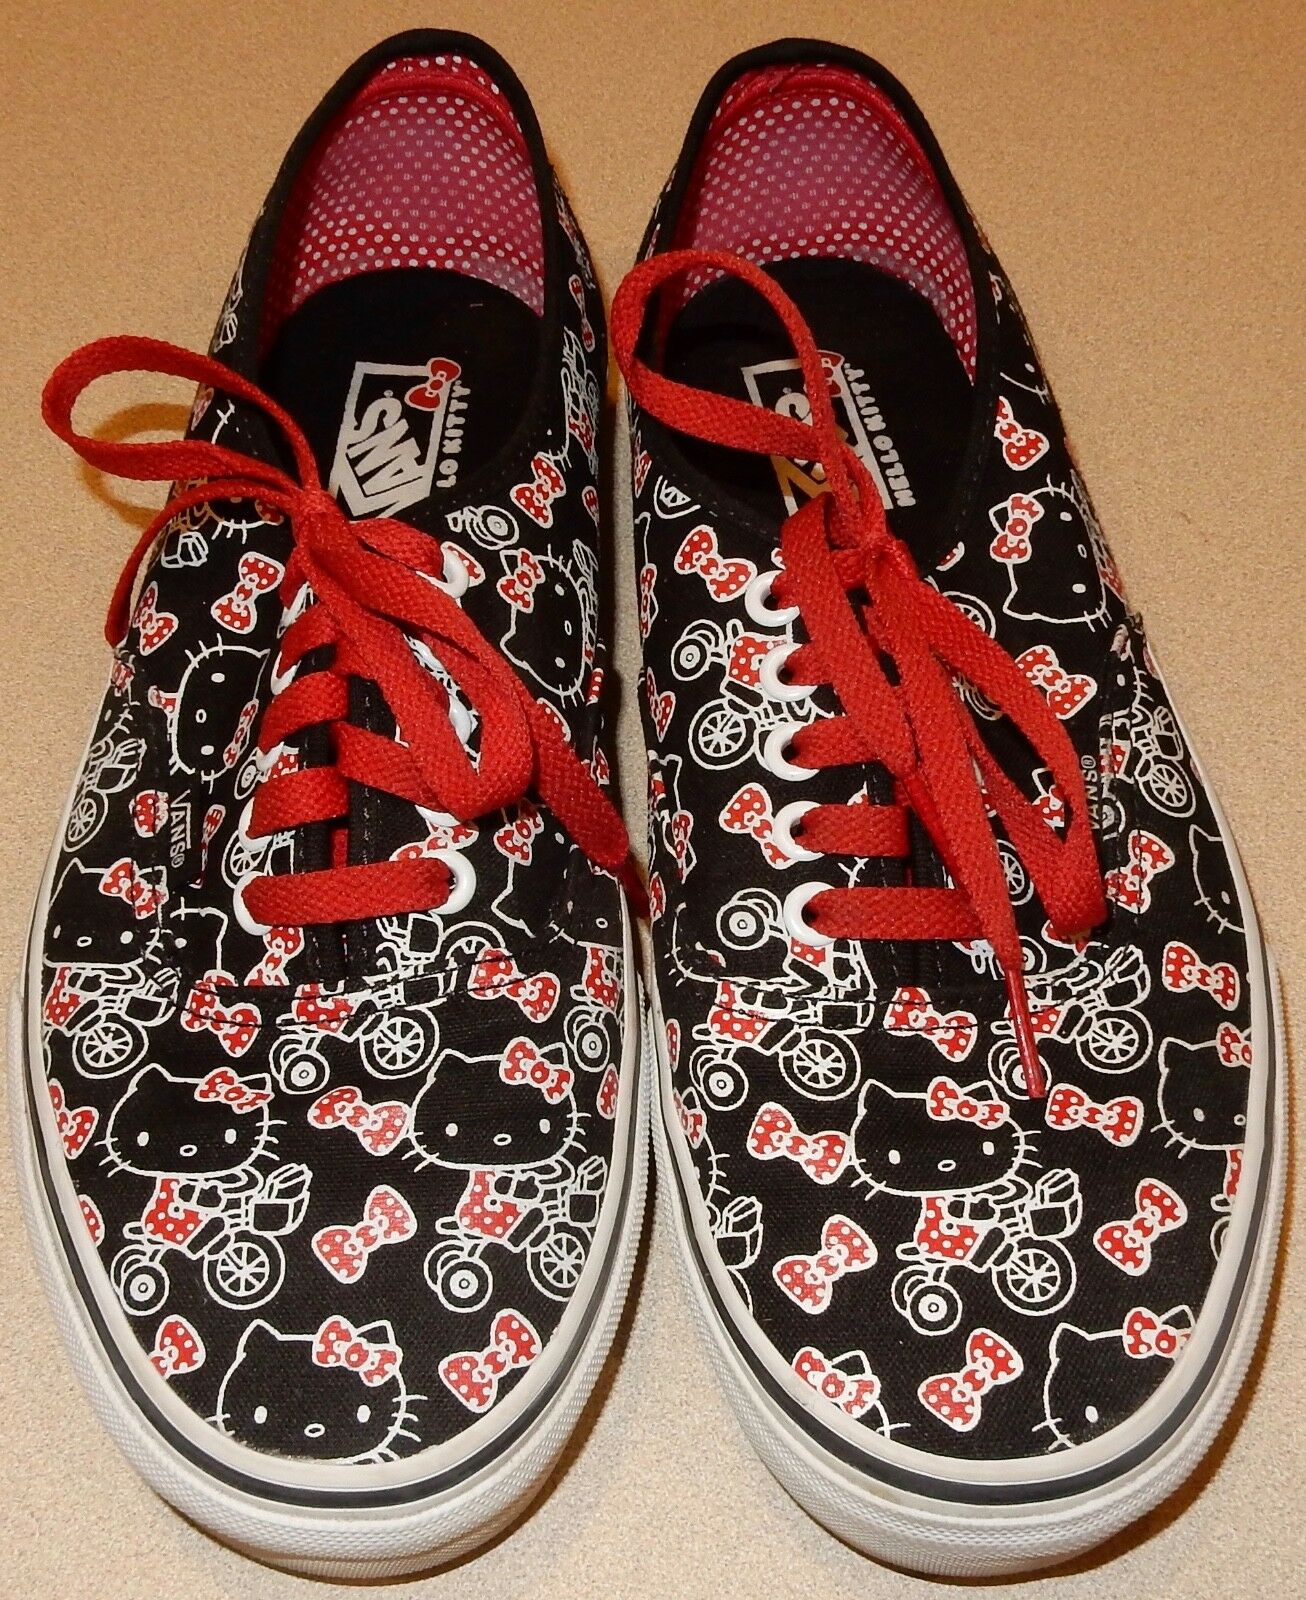 Red and Black Hello Kitty Vans Womens Size 9.5 Shoes